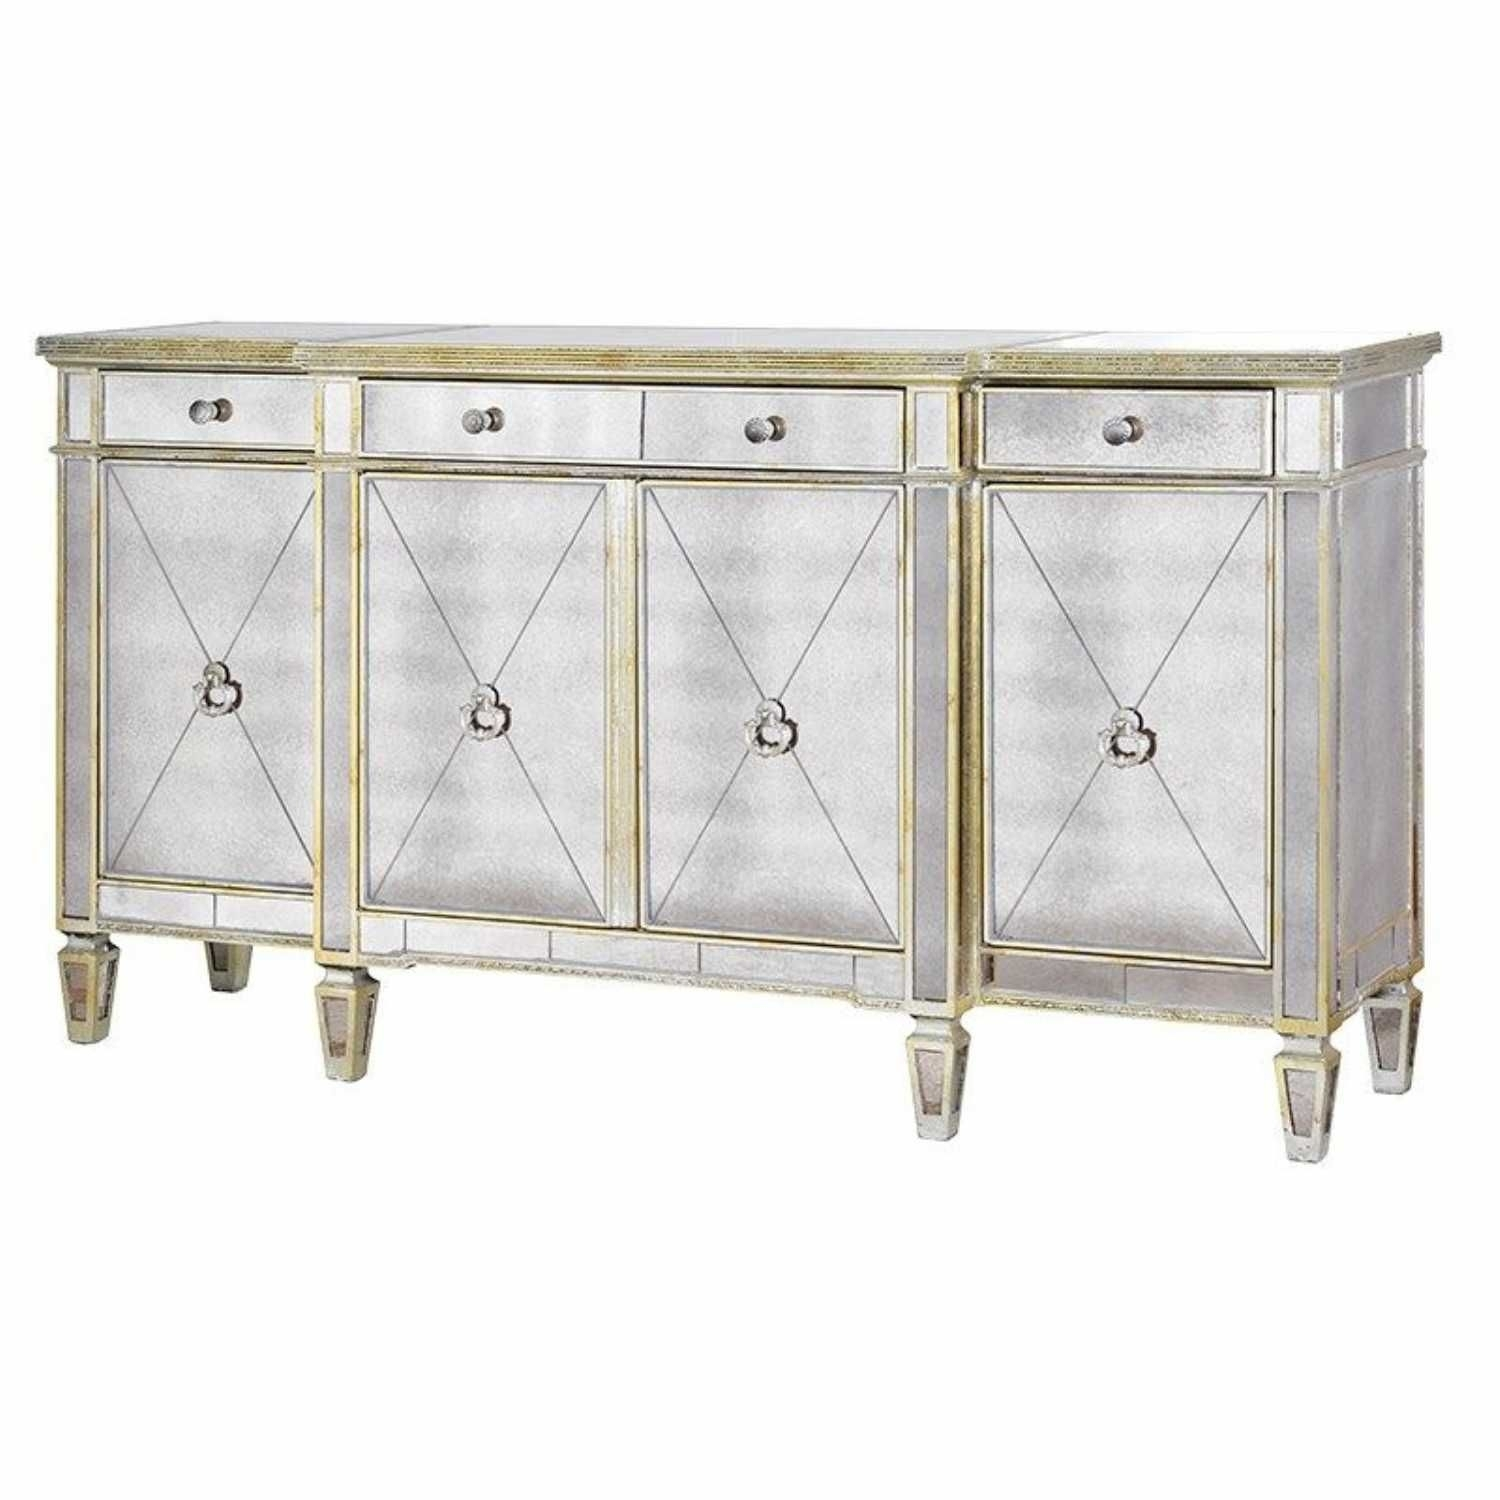 Large Antique Seville Venetian Mirrored Glass Sideboard 4 Door Intended For 2017 Aged Mirrored 4 Door Sideboards (#15 of 20)